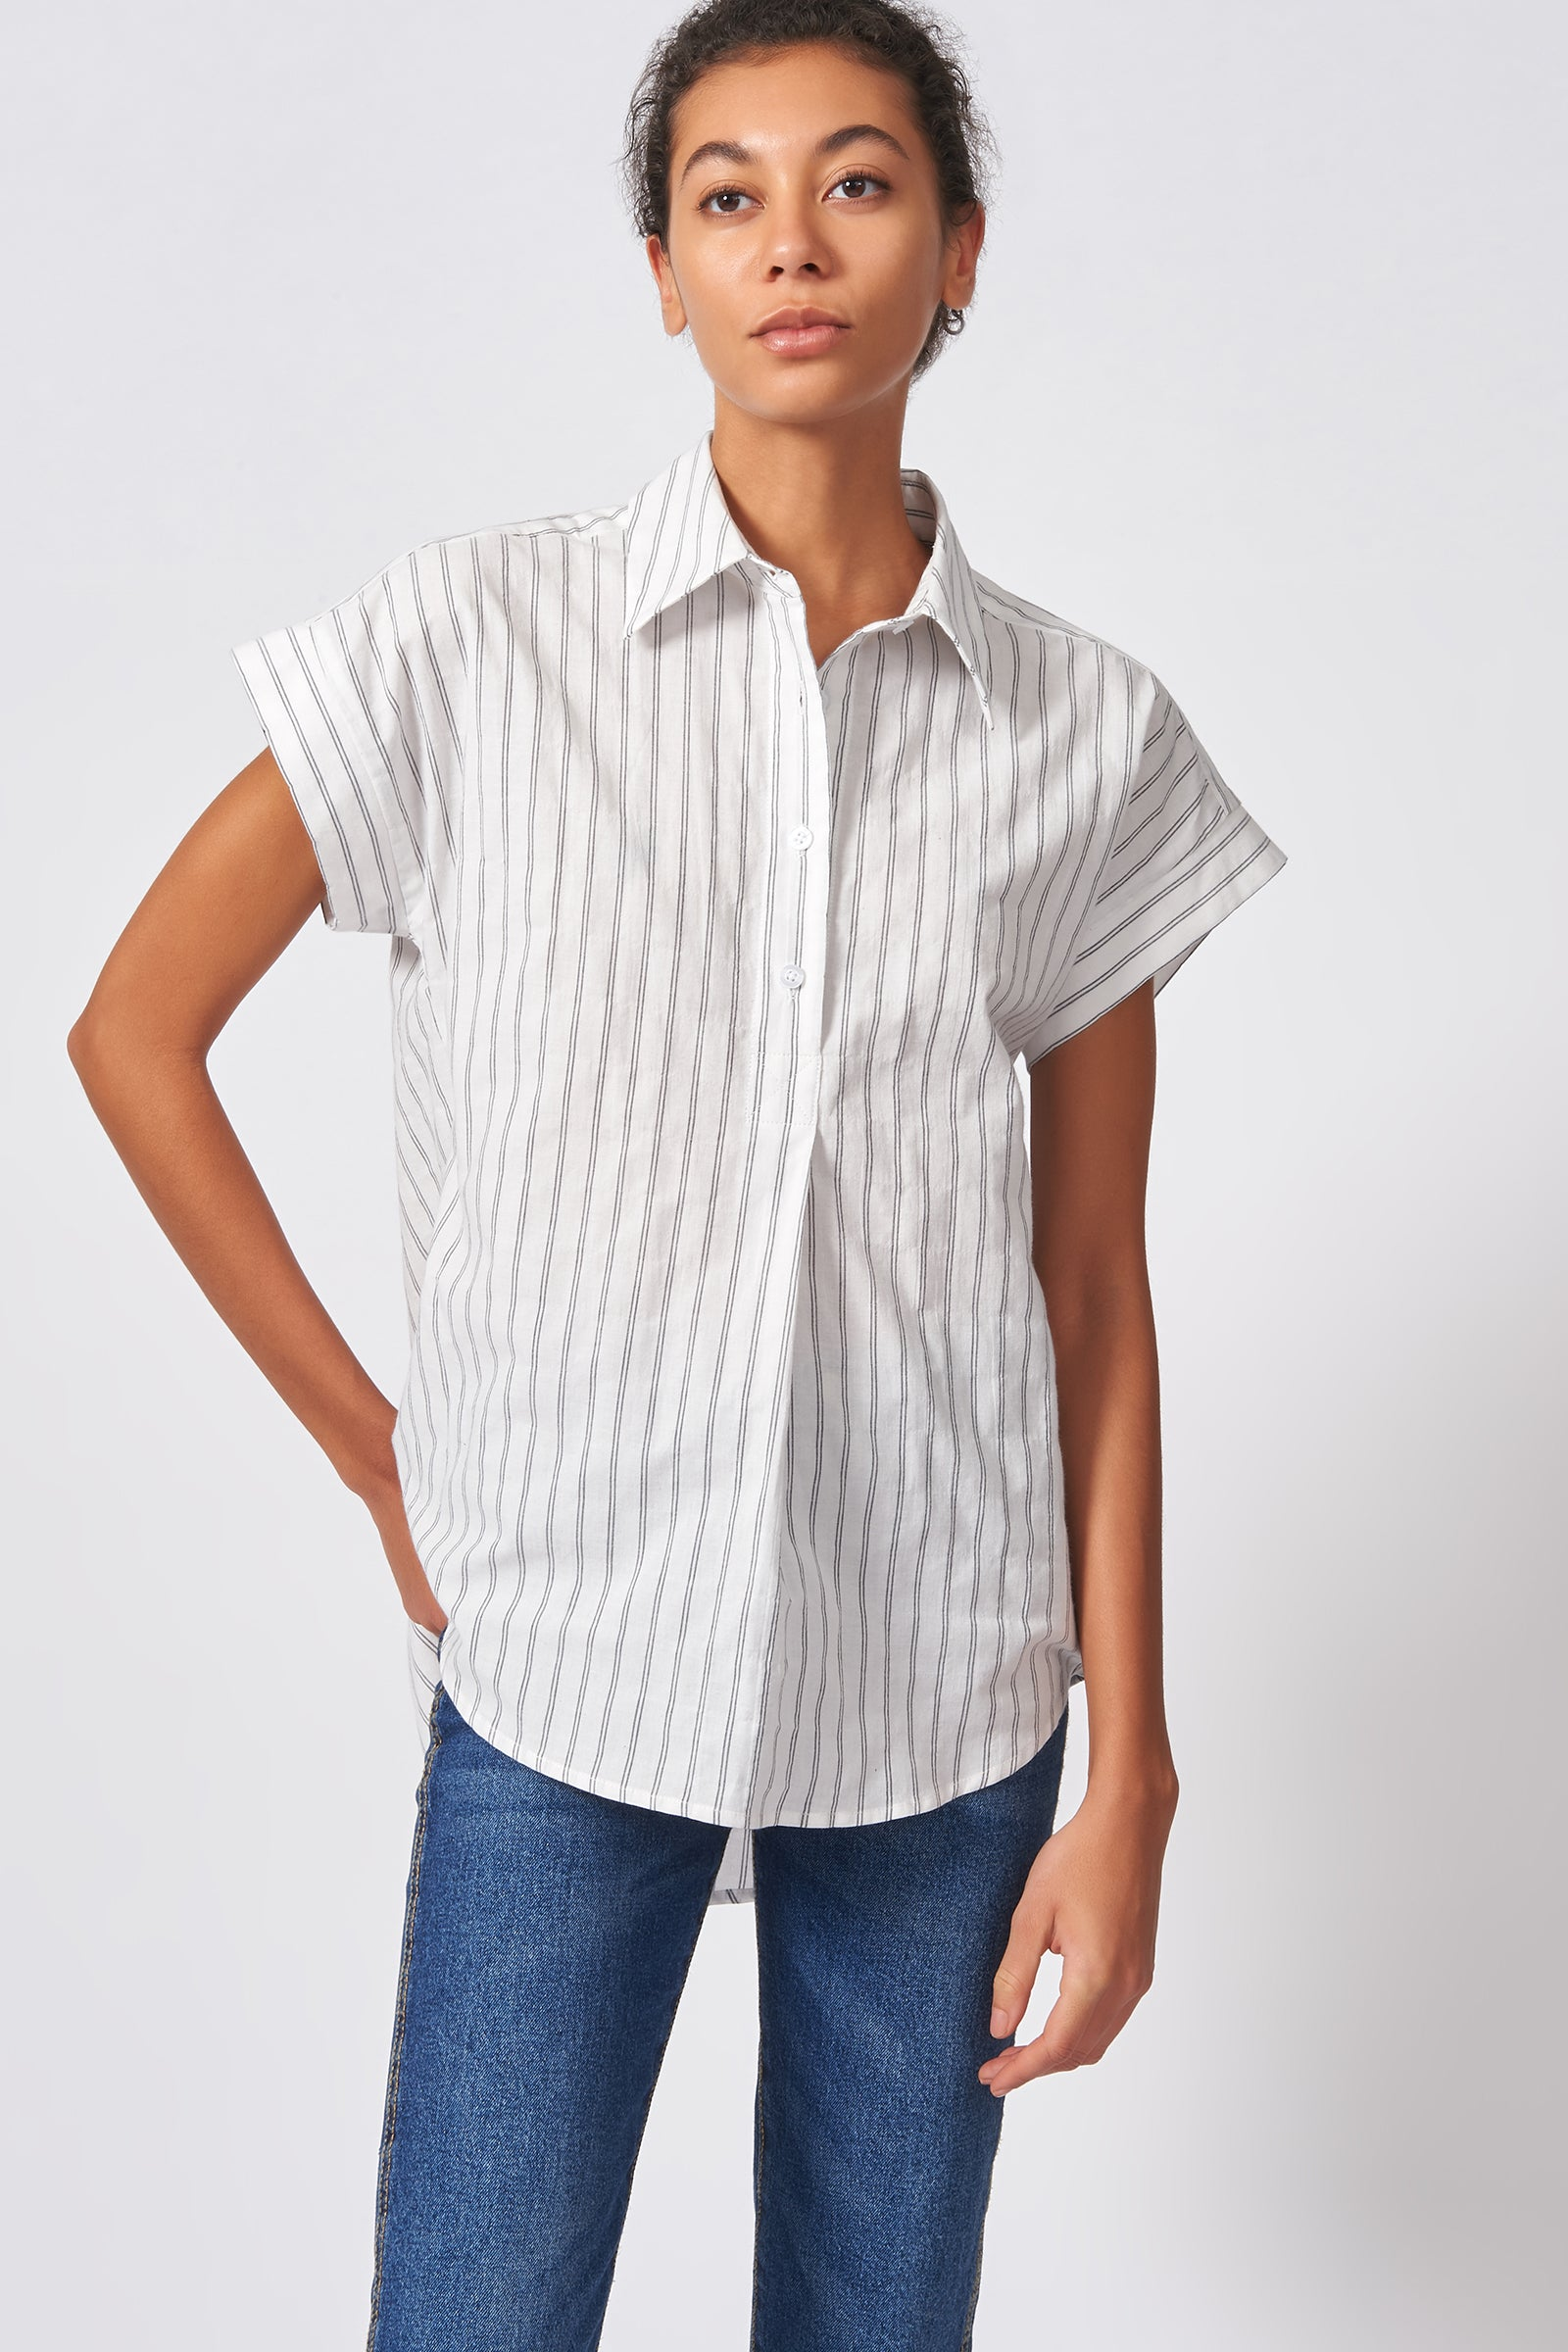 Kal Rieman Shirred Back Collared Top in Black Stripe on Model Front View